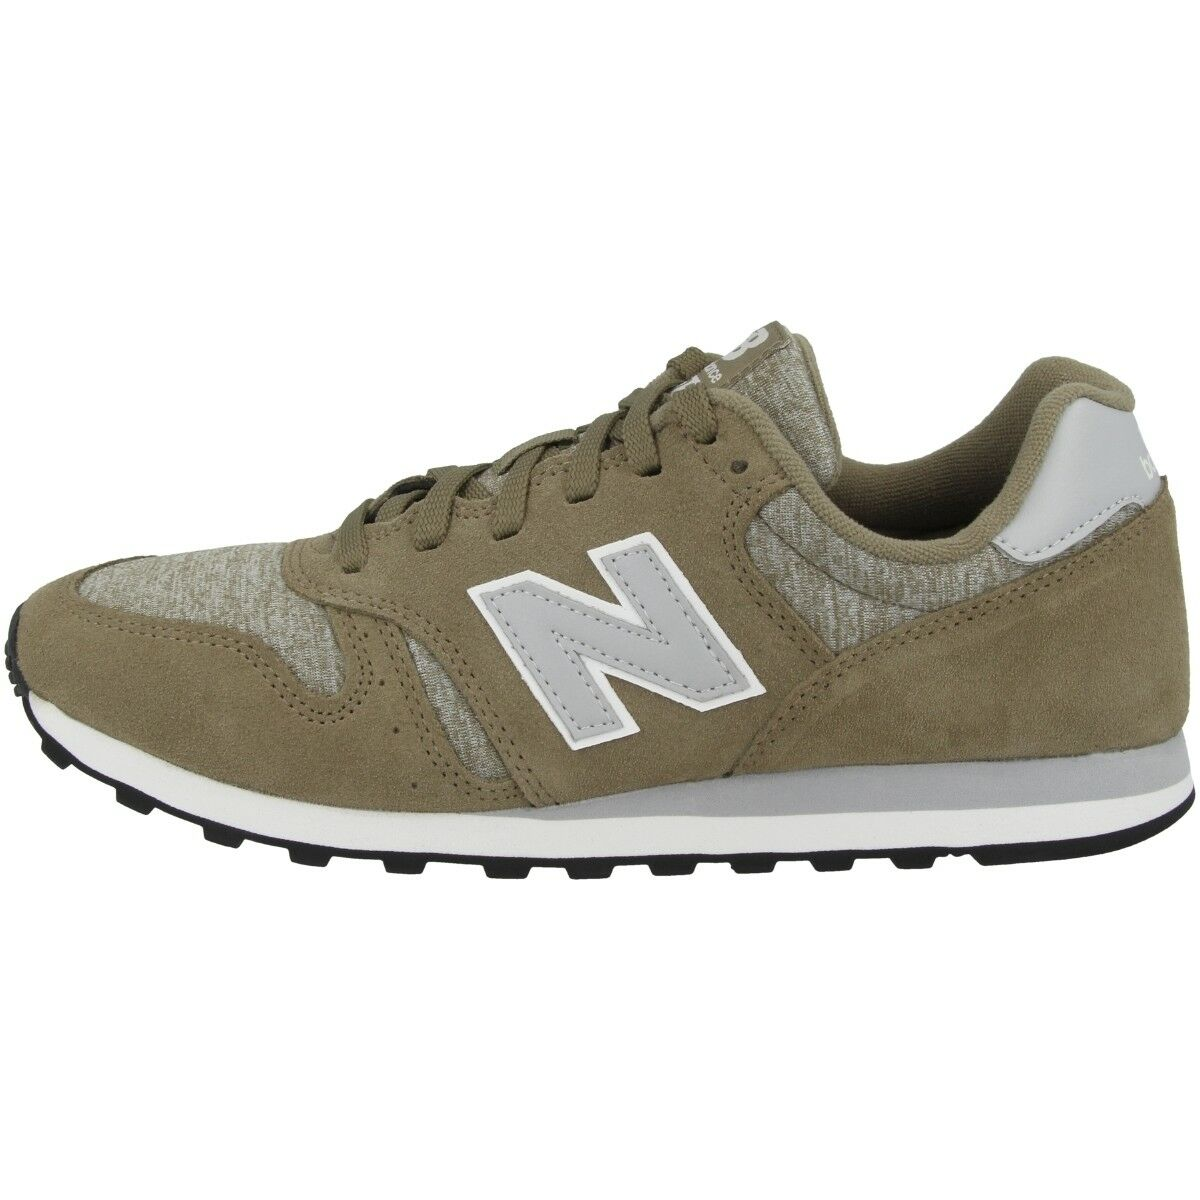 New Balance Ml 373 Cjr shoes Informal Zapatilla Deportiva Retro Cogreen Green